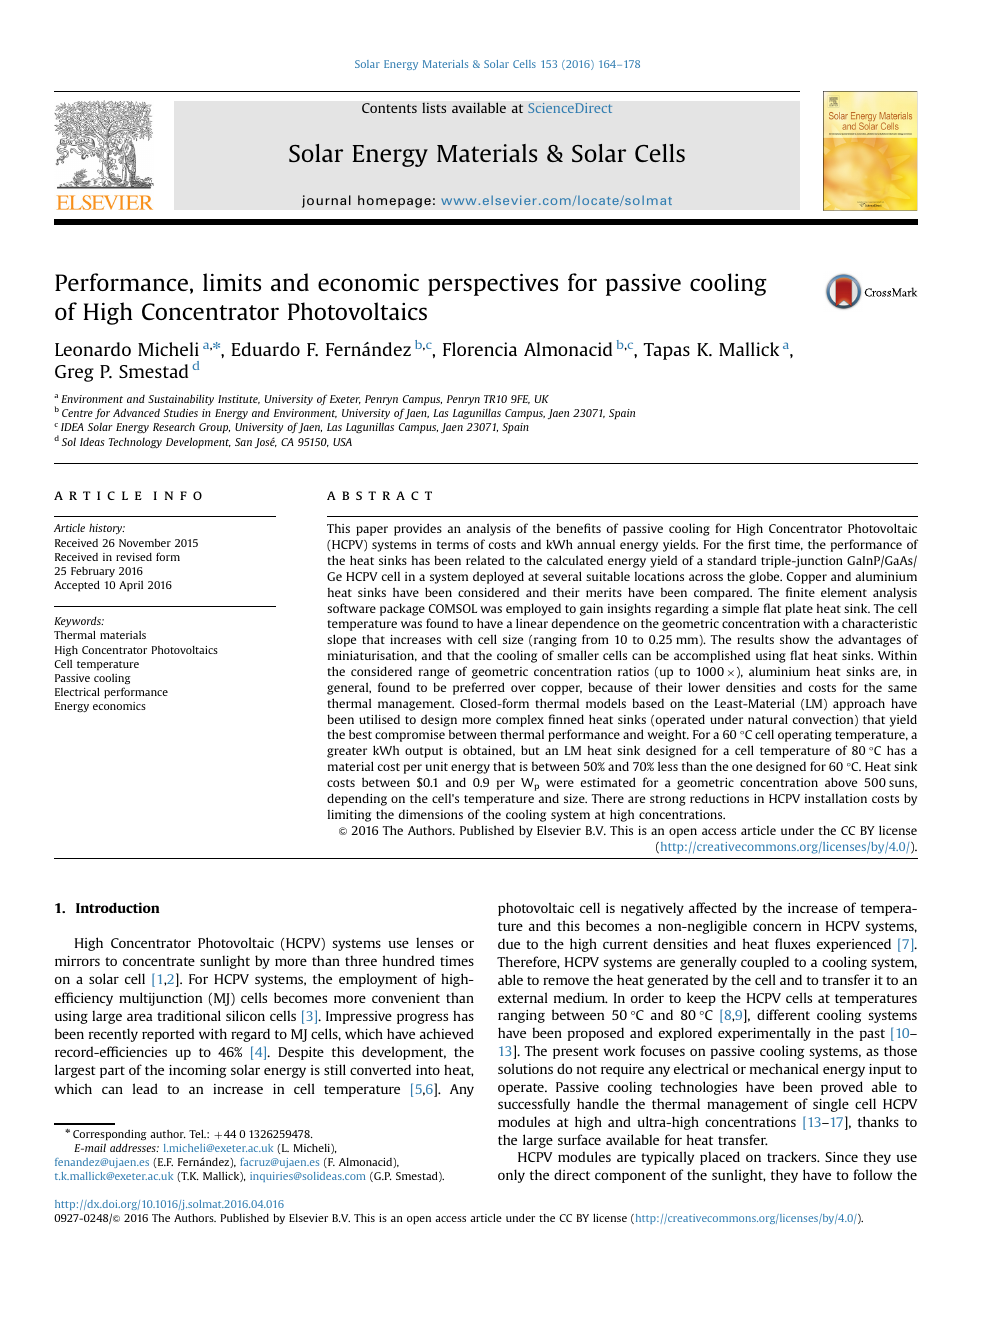 Performance, limits and economic perspectives for passive cooling of